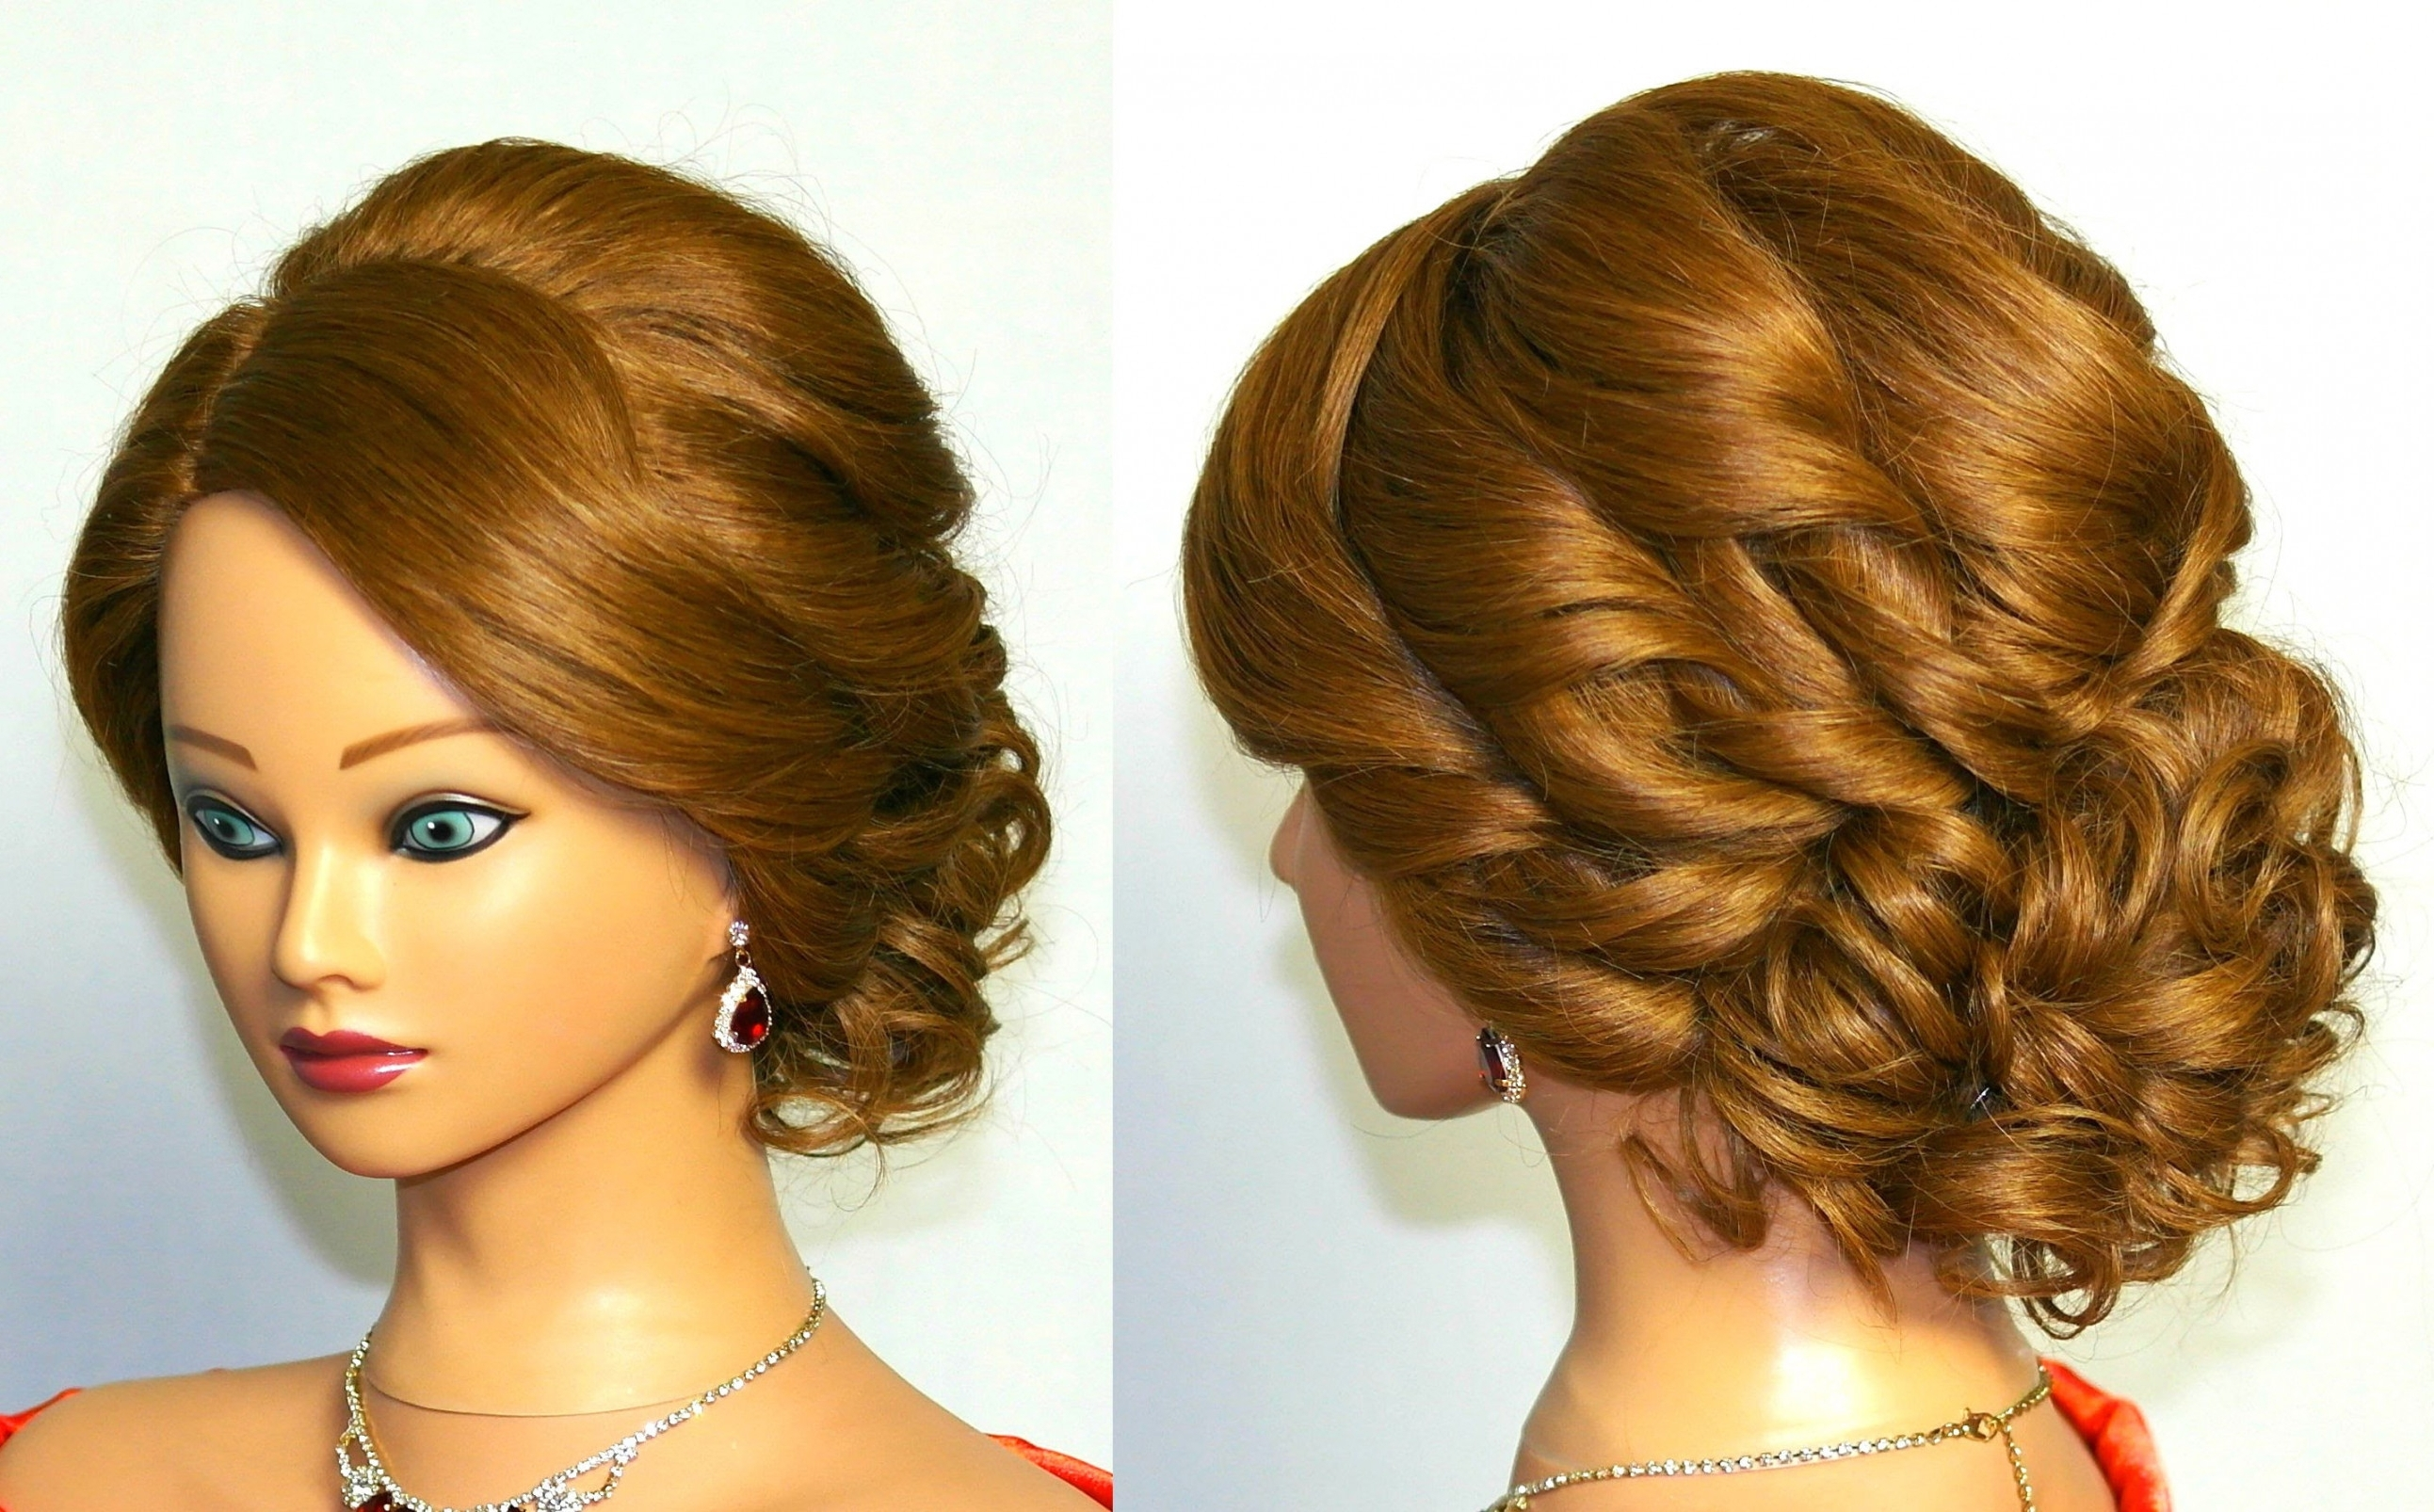 Hair Updo Hairstyles Bridal Curly Updo Hairstyle For Medium Hair In Updo Hairstyles With Bangs For Medium Length Hair (View 15 of 15)